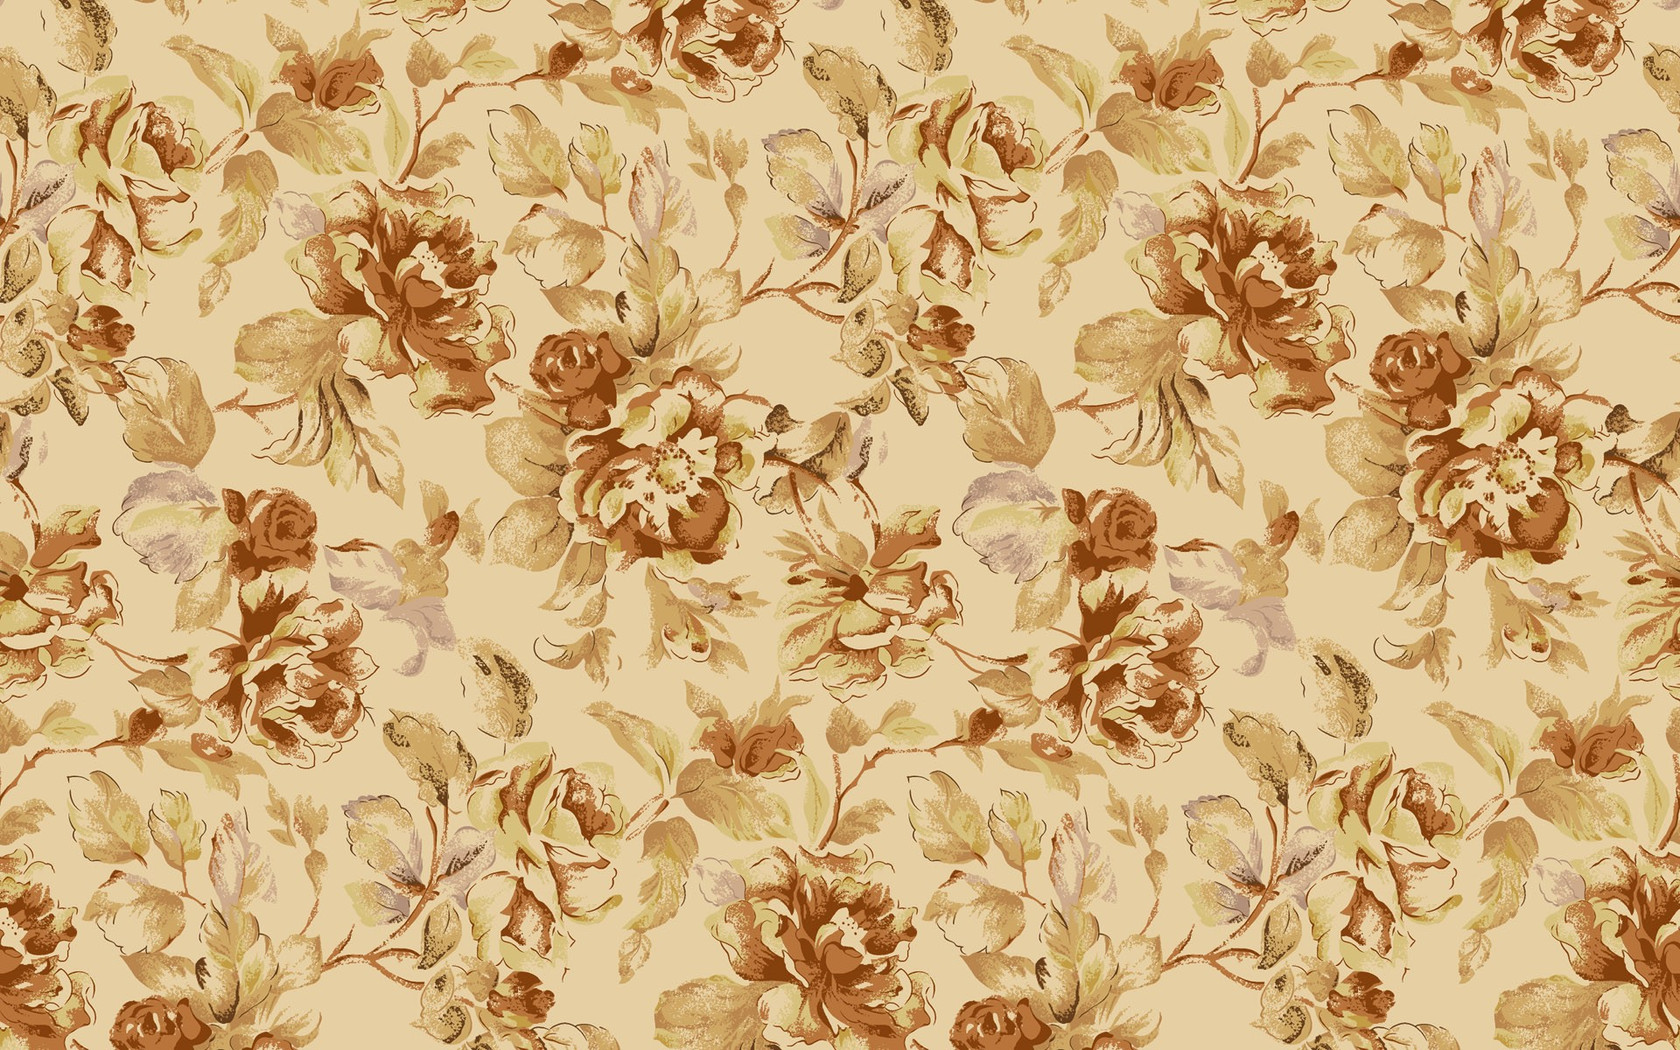 ... Vintage floral pattern 1680x1050 wallpaper ...